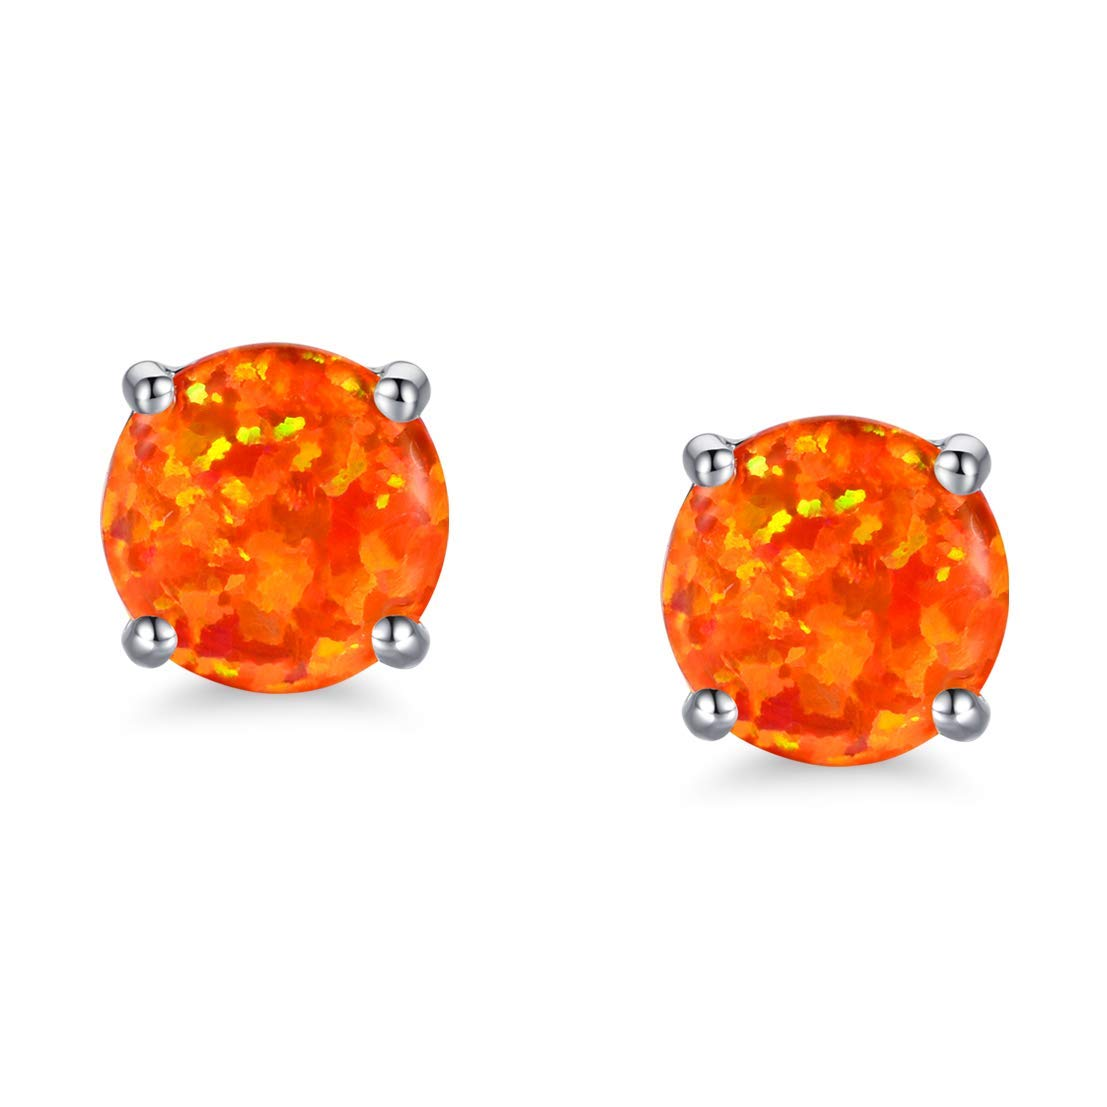 df814ae22 Get Quotations · White Gold Plated Opal Stud Earrings with Round Cut Orange Fire  Opal for Women Girls Hypoallergenic